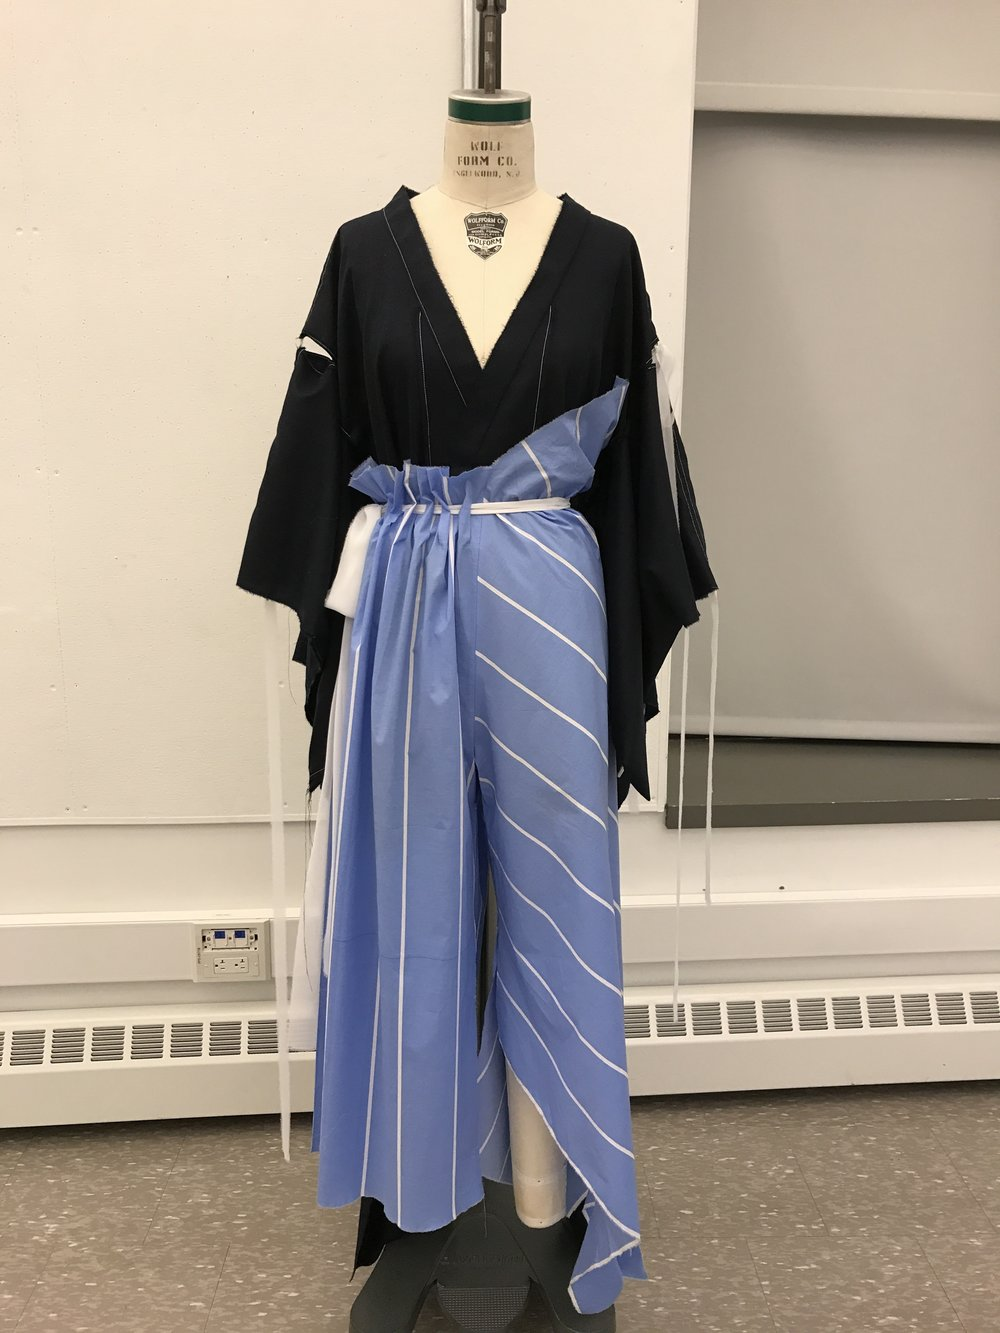 Here is the muslin that I presented during midterm crit of look 4